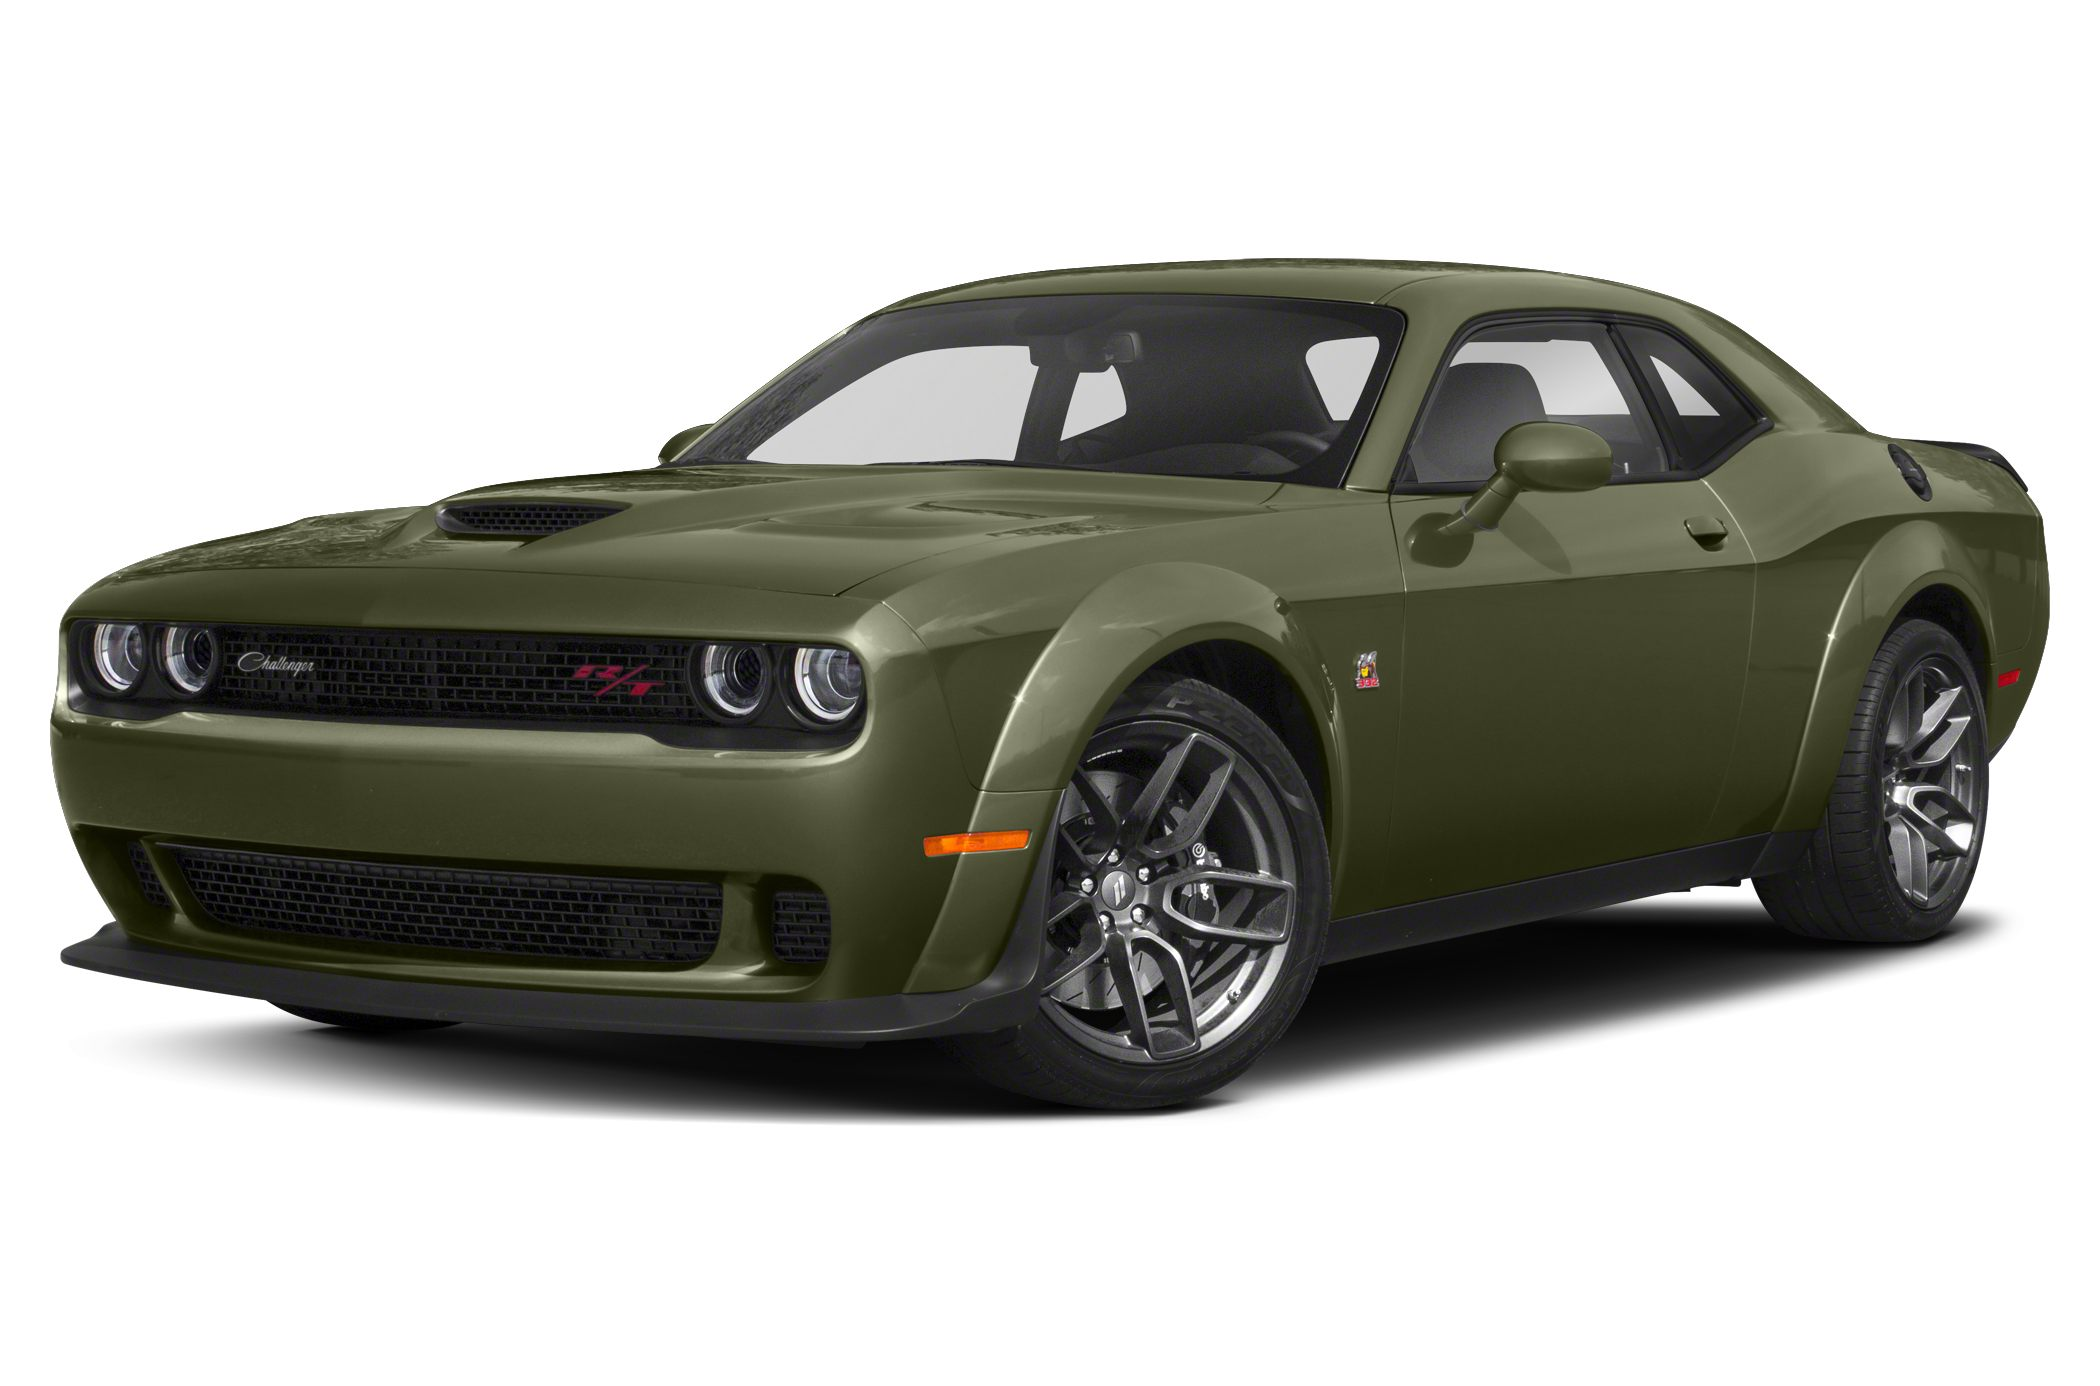 Dodge to sell off first Challenger SRT Hellcat for charity